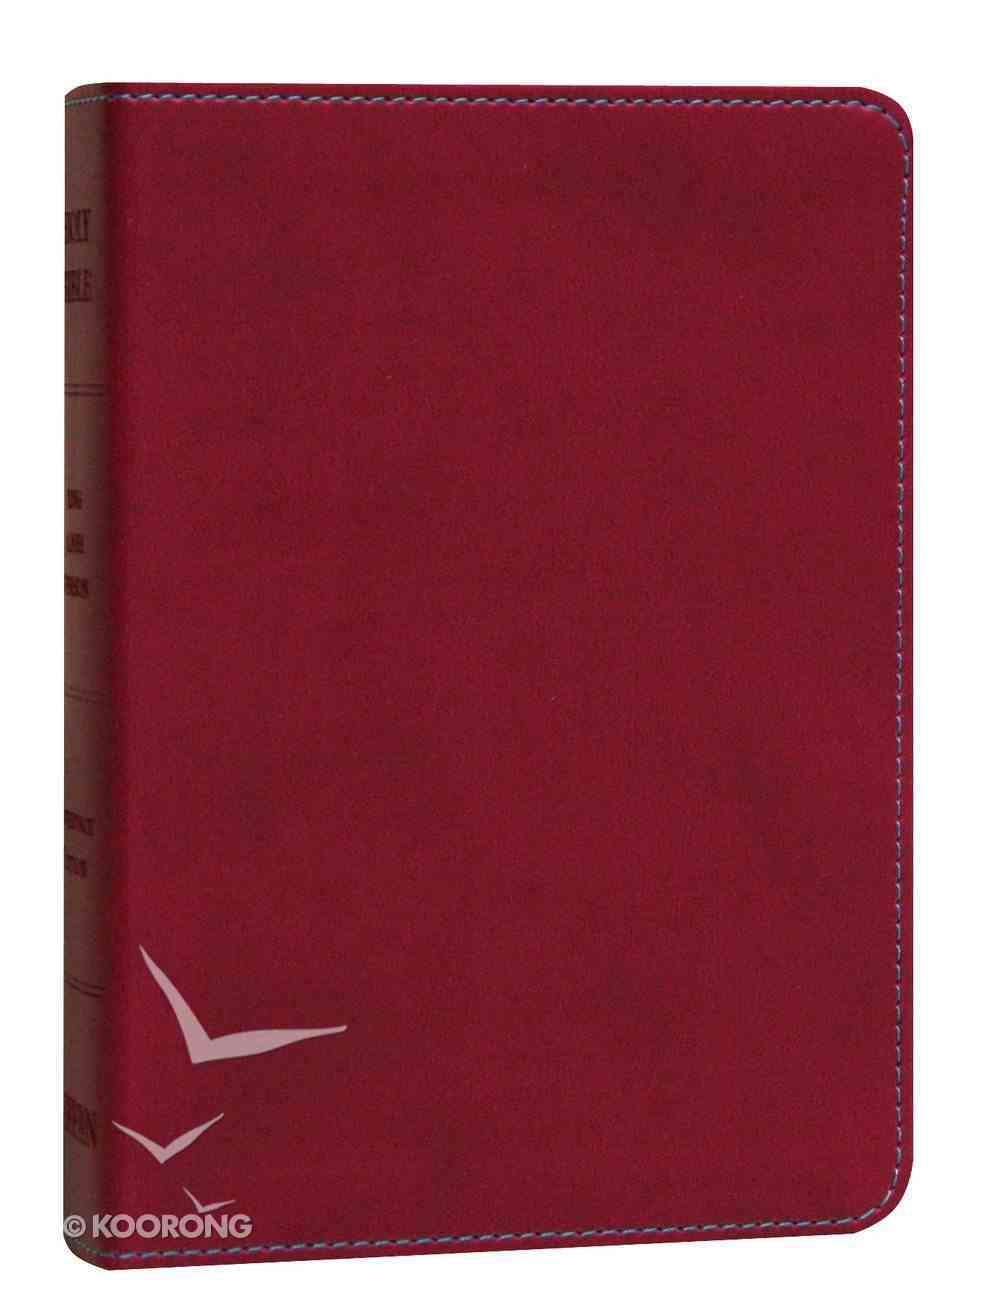 KJV Hendrickson Compact Reference Large Print Berry Imitation Leather